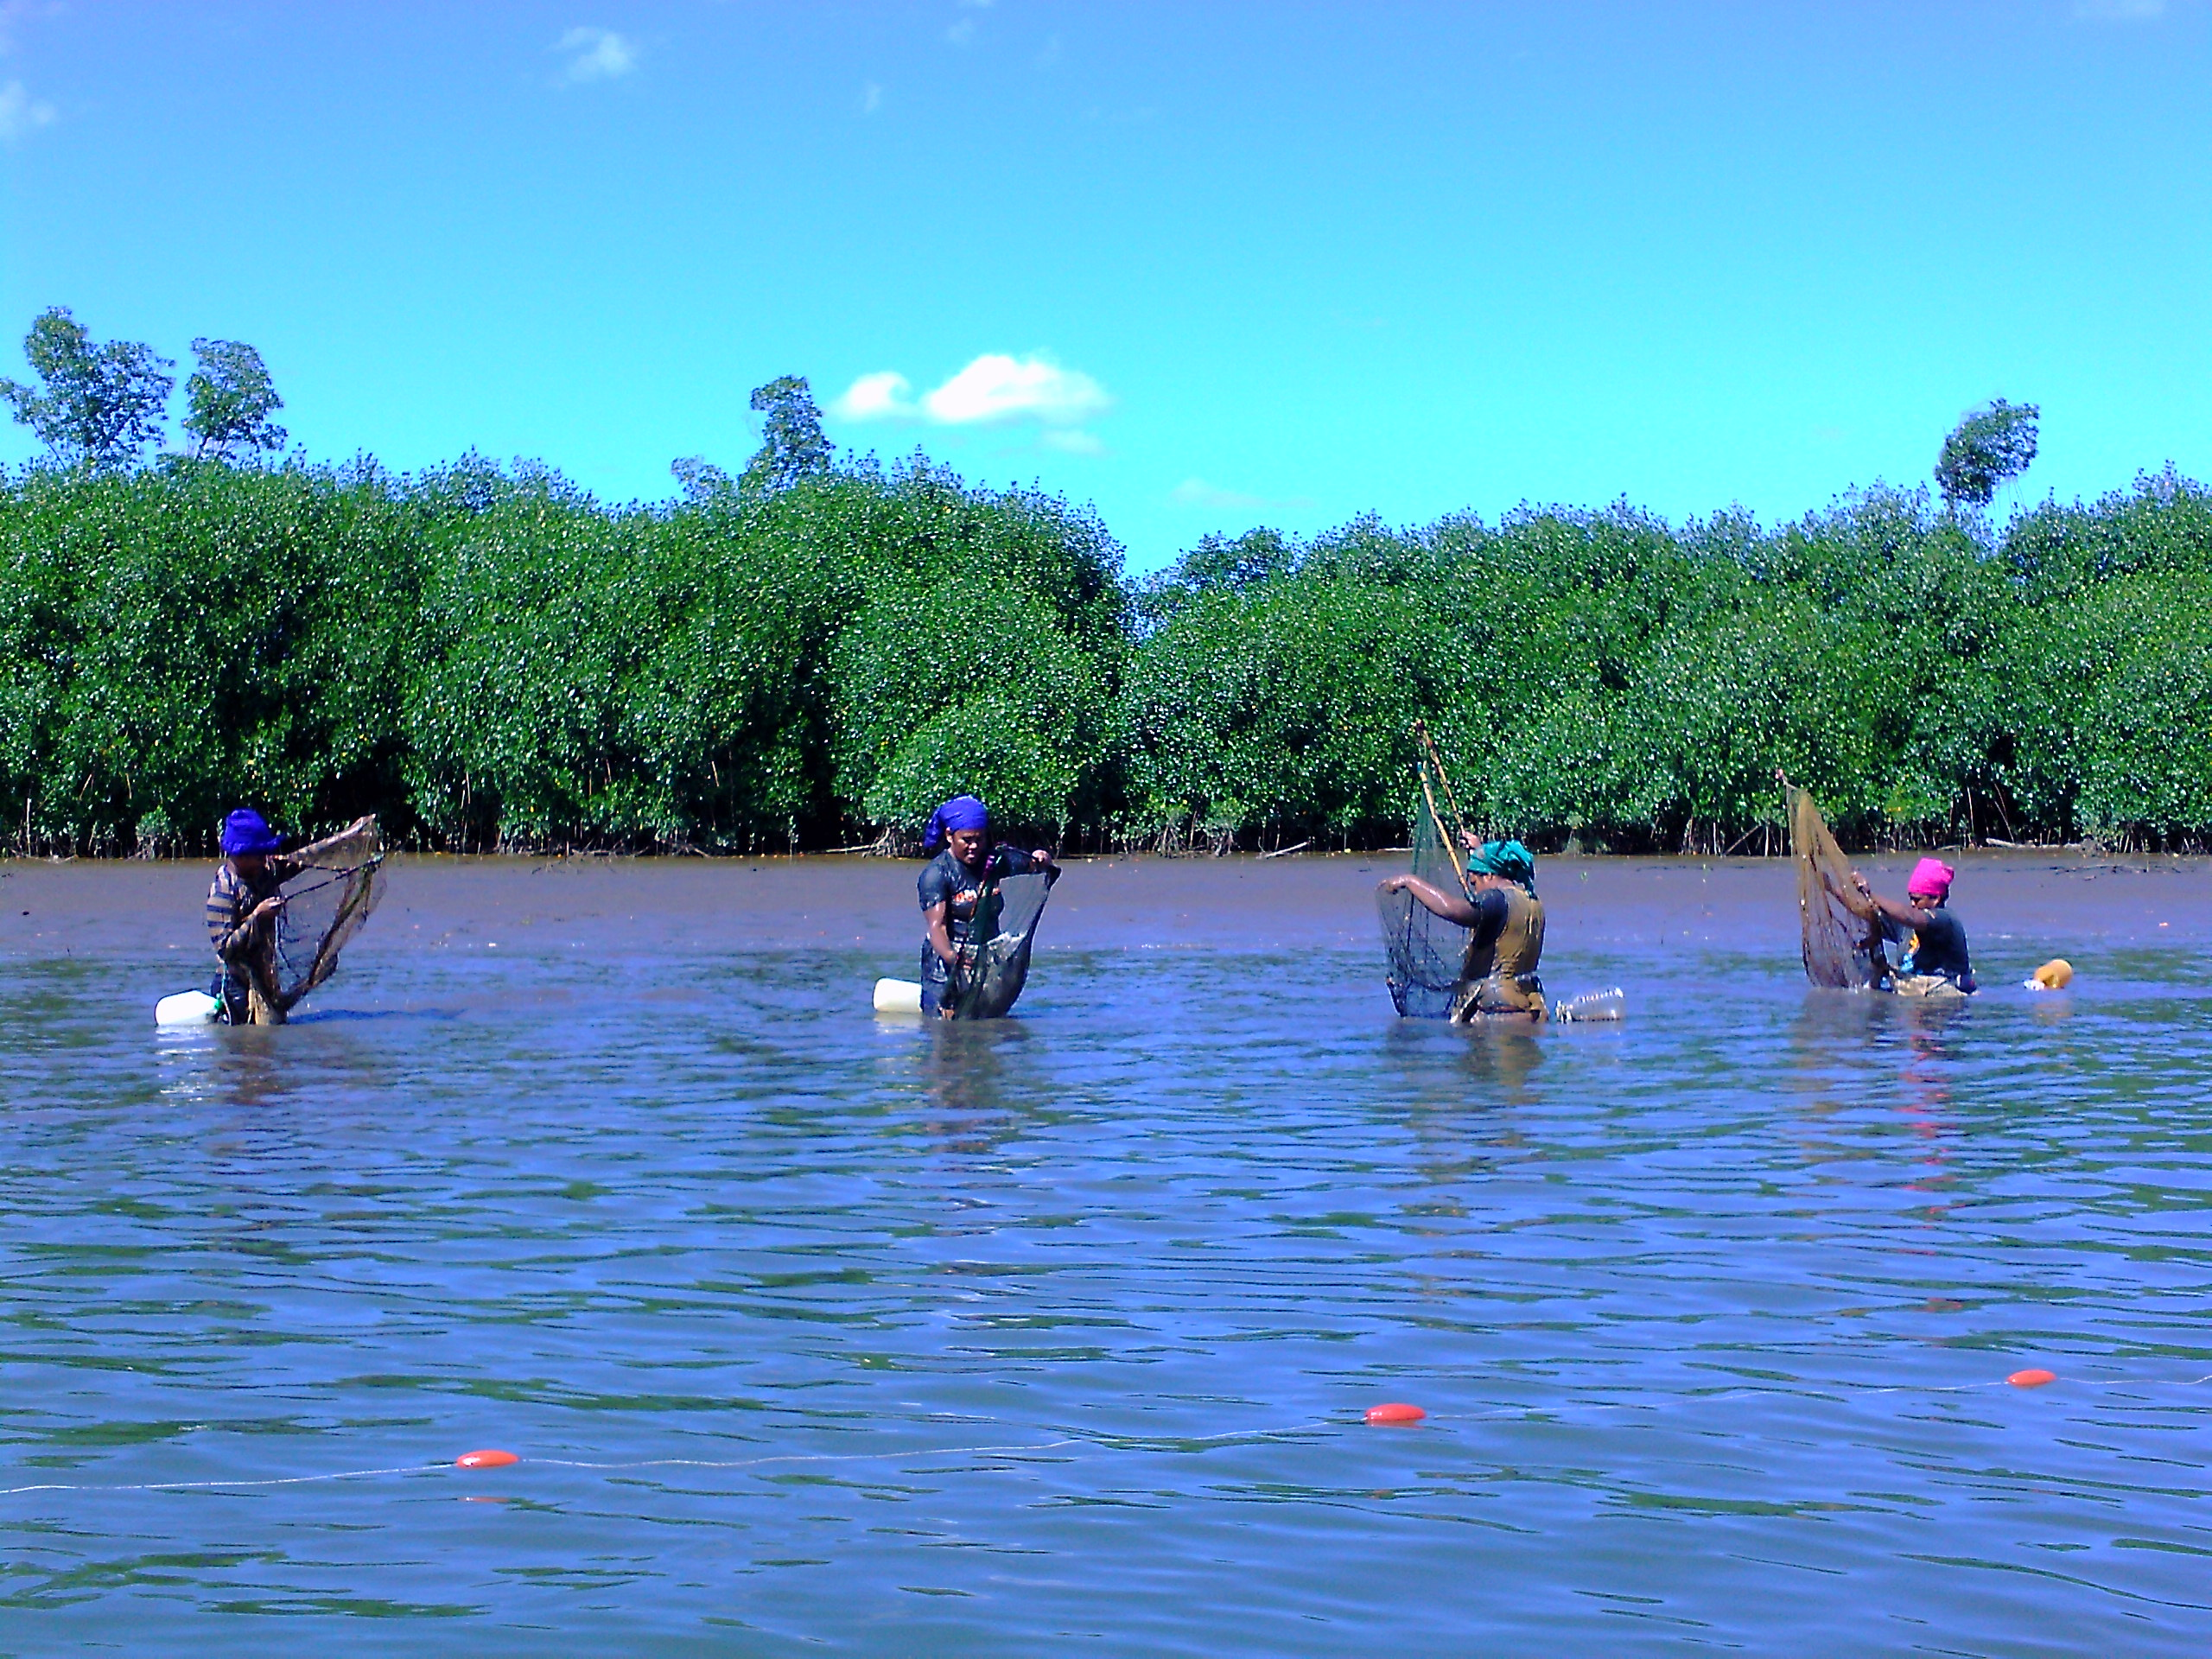 the field studies of the mangrove Field studies in biodiyersity 1 20 ii phase so slightly more light, less humid, slightly warmer and with o learn character,istics of a mangrove ecosystem o observe the diversity of its constituent flora and fauna habitat.